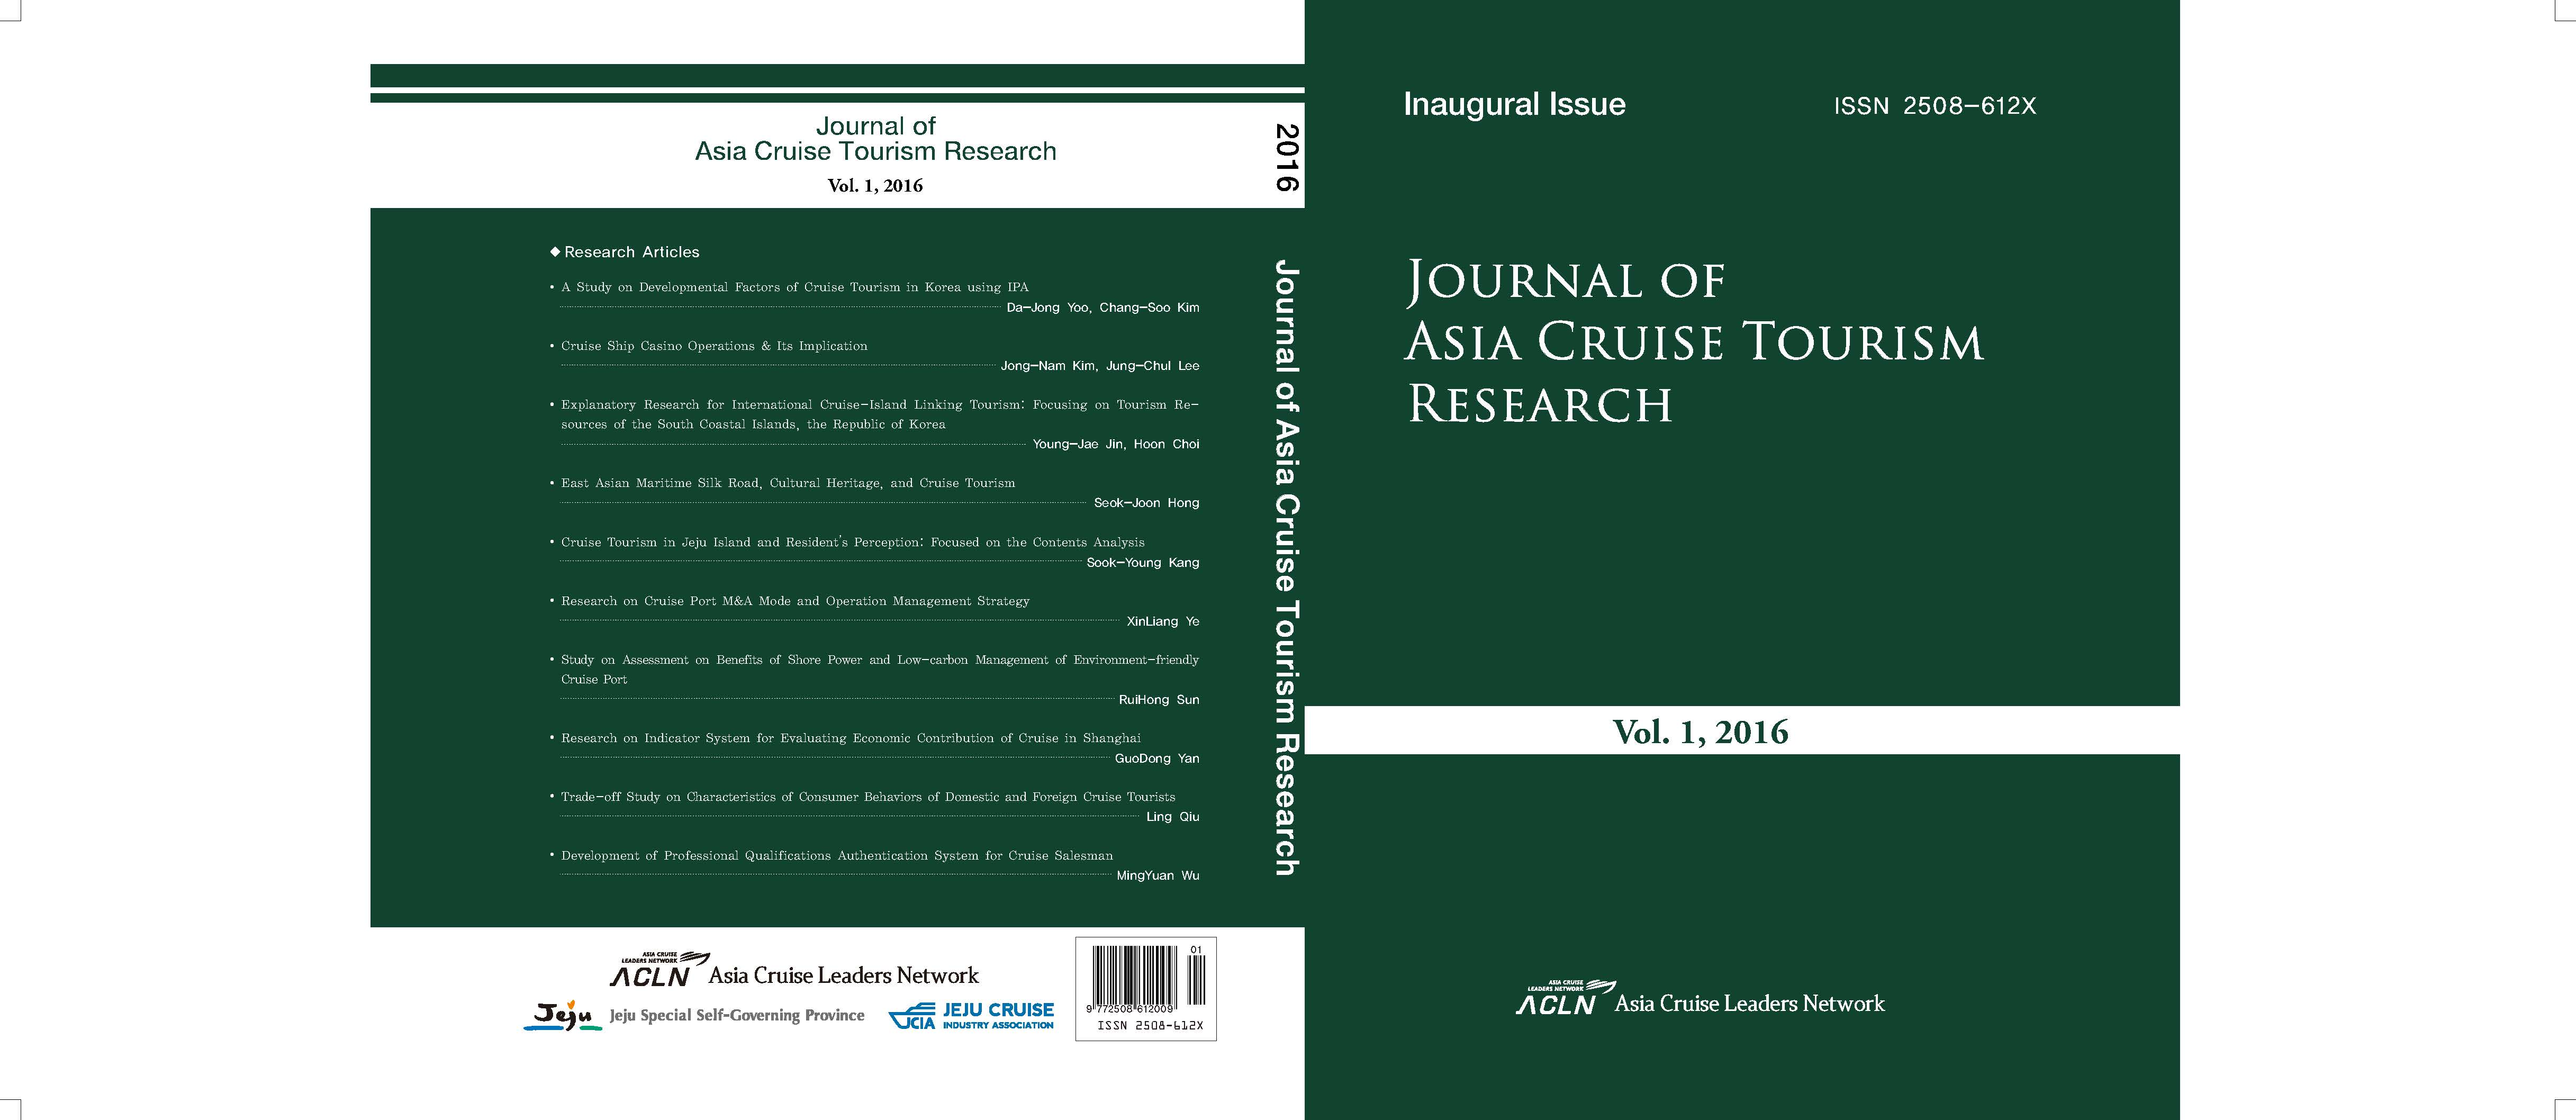 Journal of Asia Cruise Tourism Research.jpg